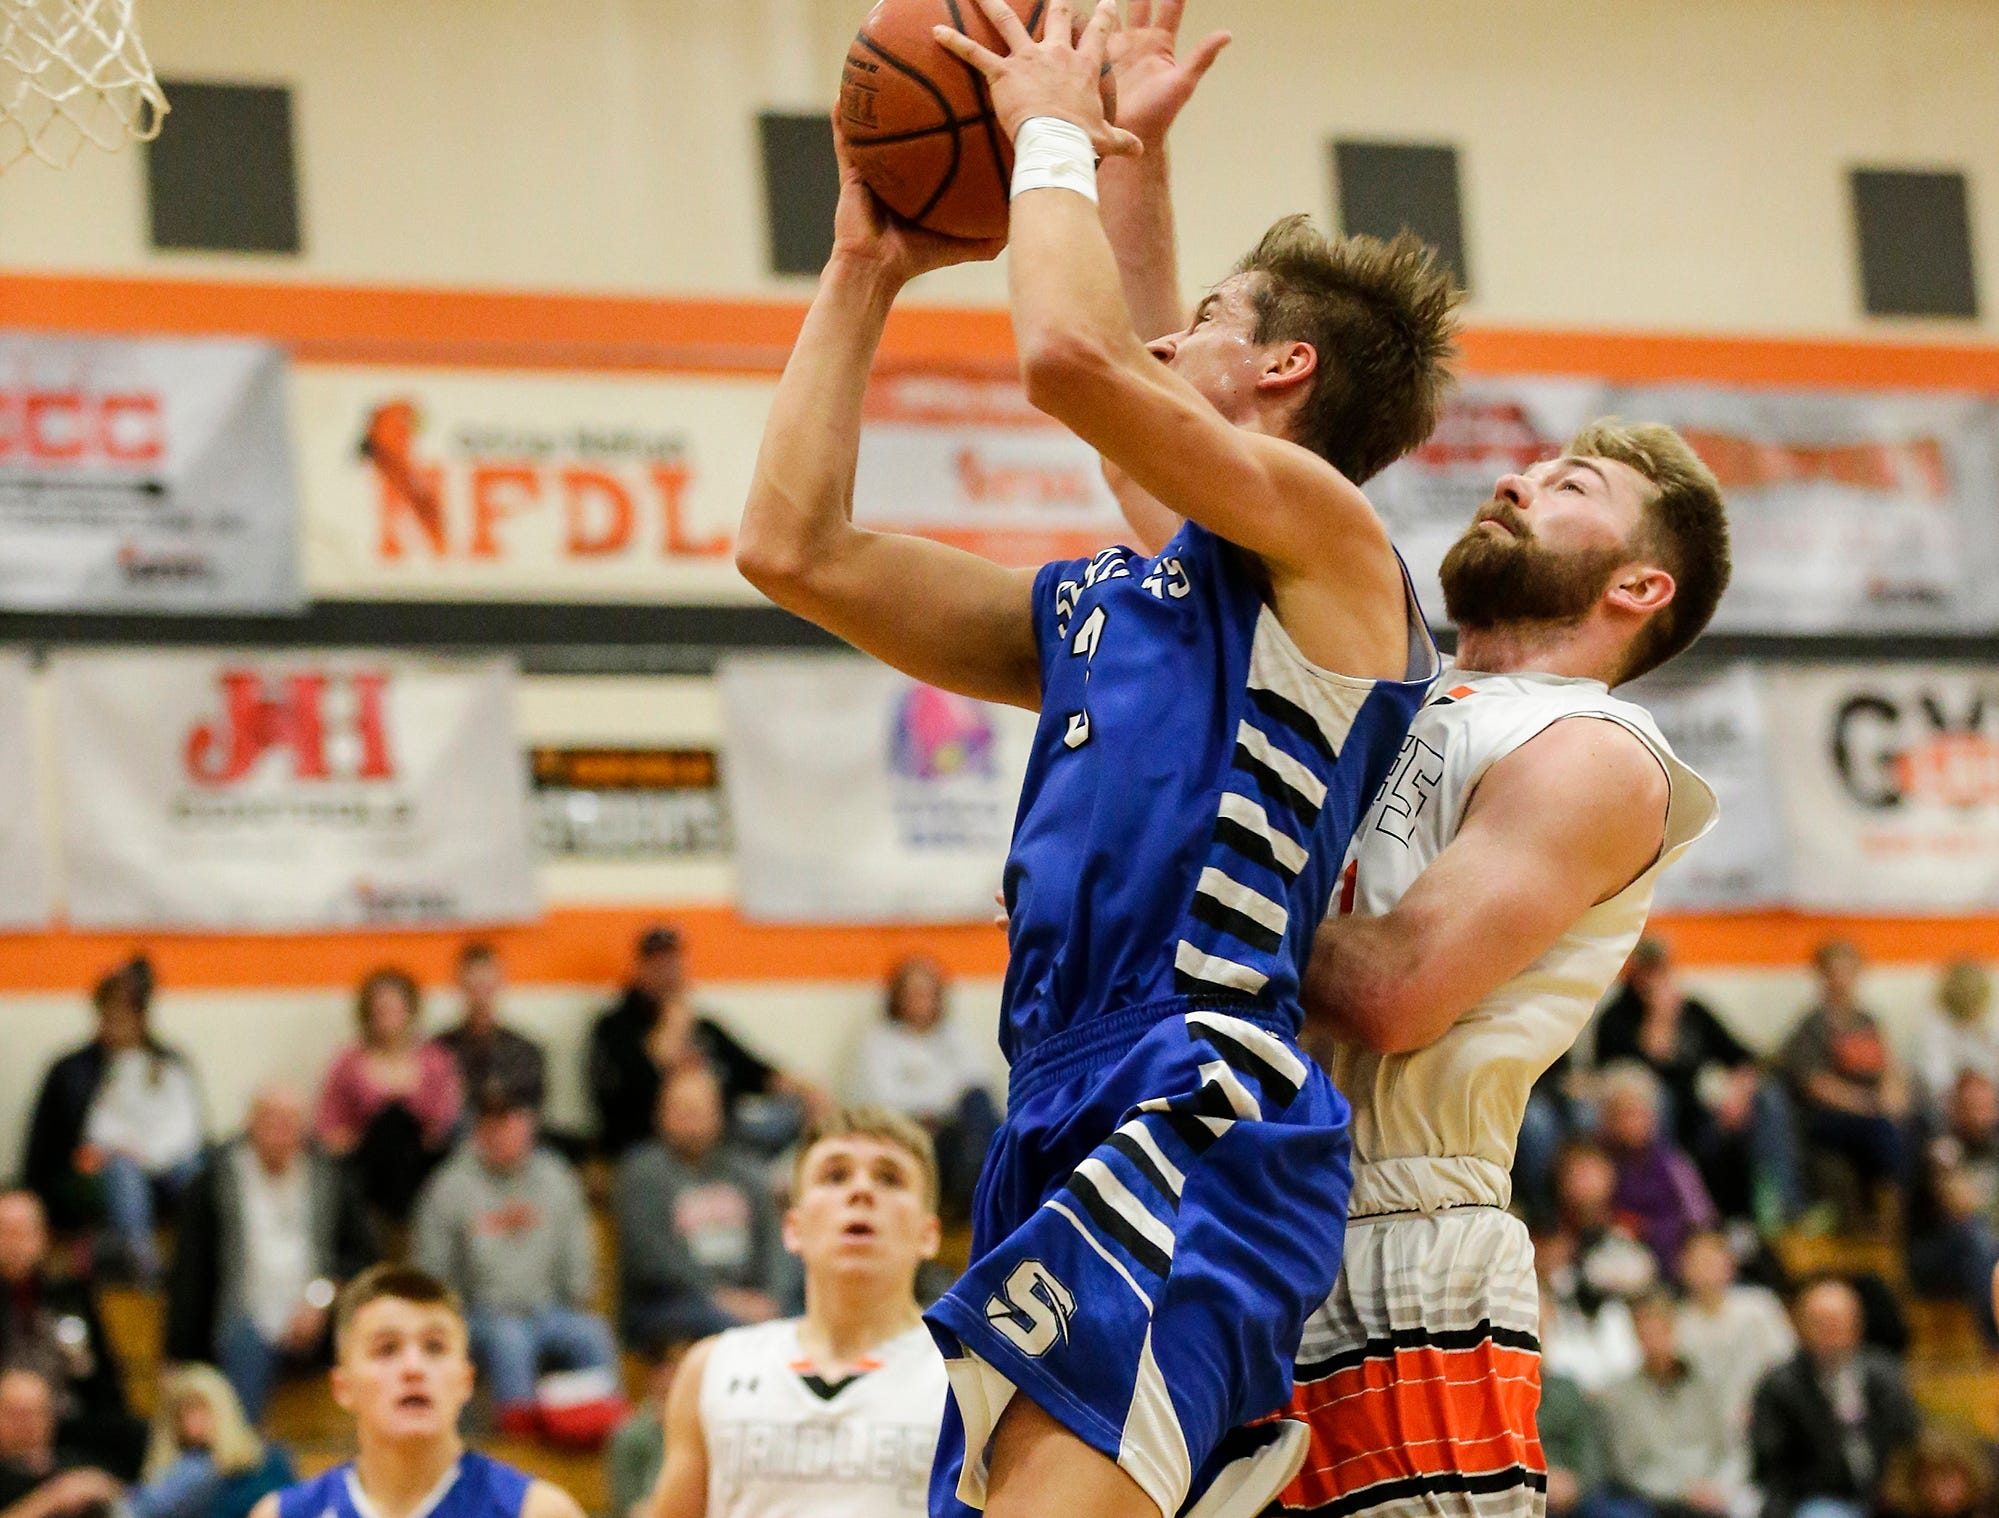 North Fond du Lac High School boys basketball's Alan Ayala fouls St. Mary's Springs Academy's Mitch Waechter during their game Friday, December 7, 2018 in North Fond du Lac, Wisconsin. Doug Raflik/USA TODAY NETWORK-Wisconsin